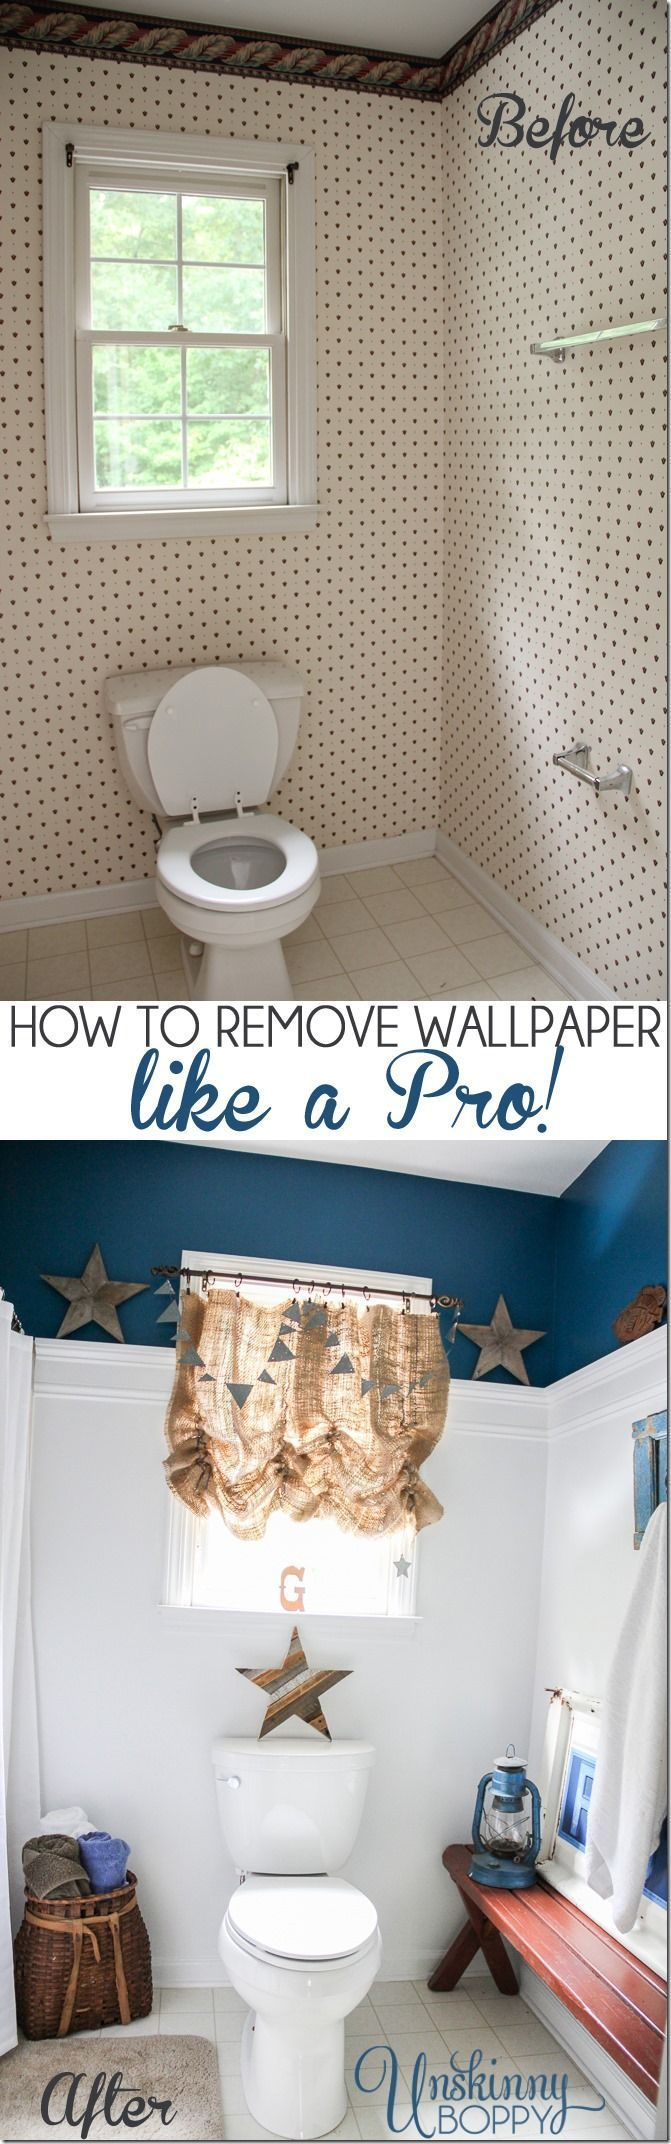 How to remove wallpaper paste from sheetrock - How To Remove Wallpaper Like A Pro With Unskinny Boppy